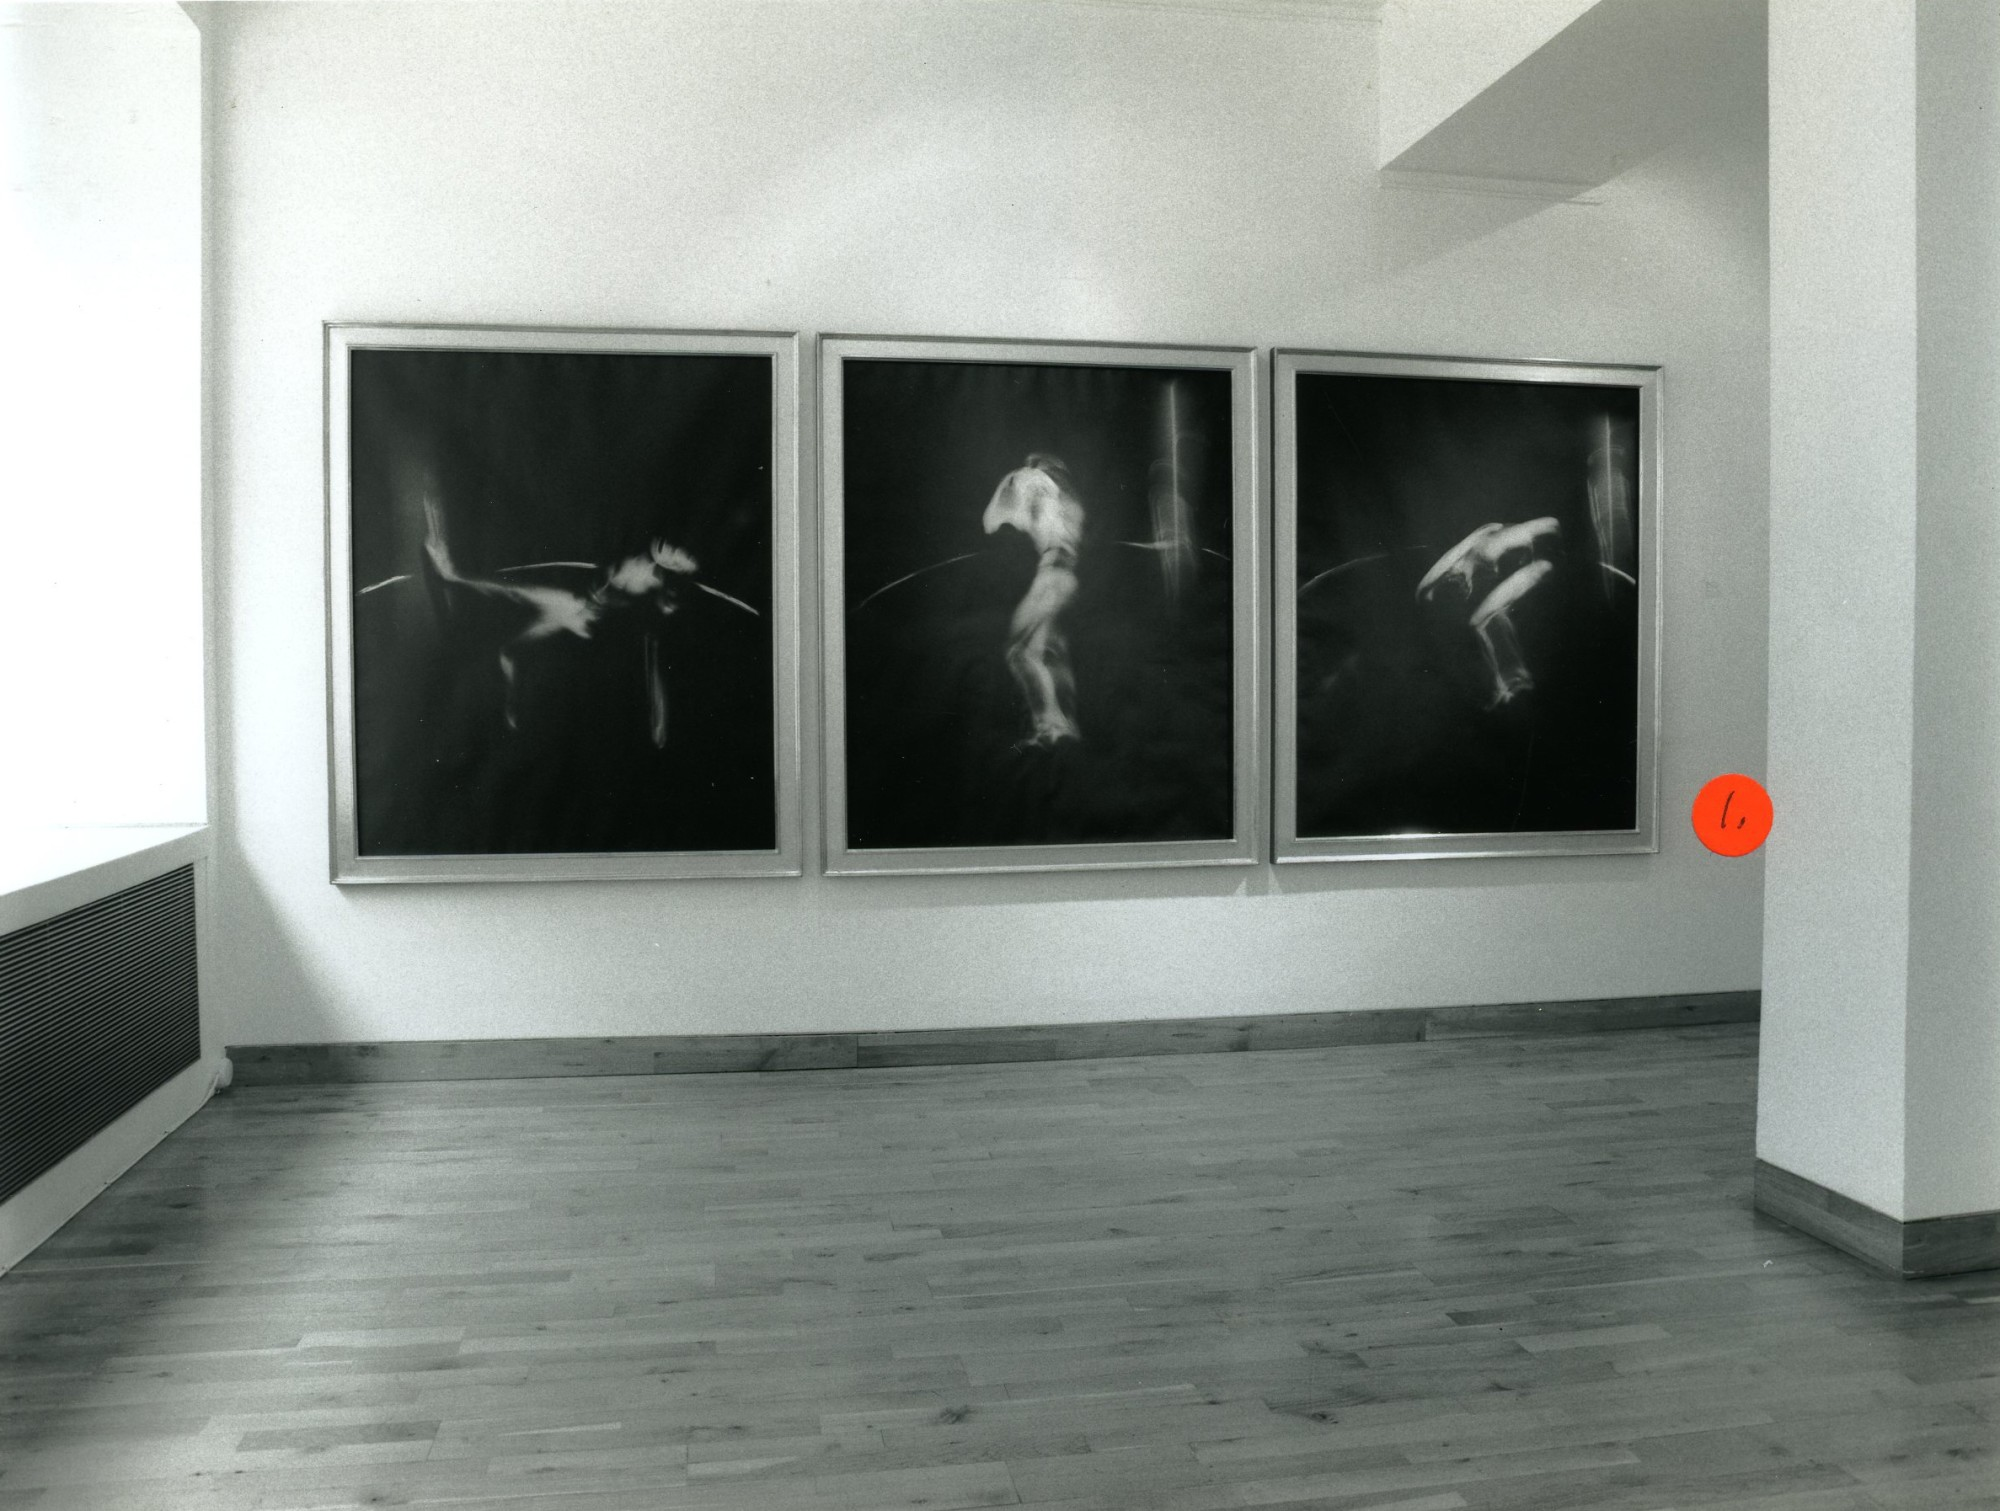 """<span class=""""link fancybox-details-link""""><a href=""""/exhibitions/155/works/image_standalone665/"""">View Detail Page</a></span><p>VICTOR SKREBNESKI 